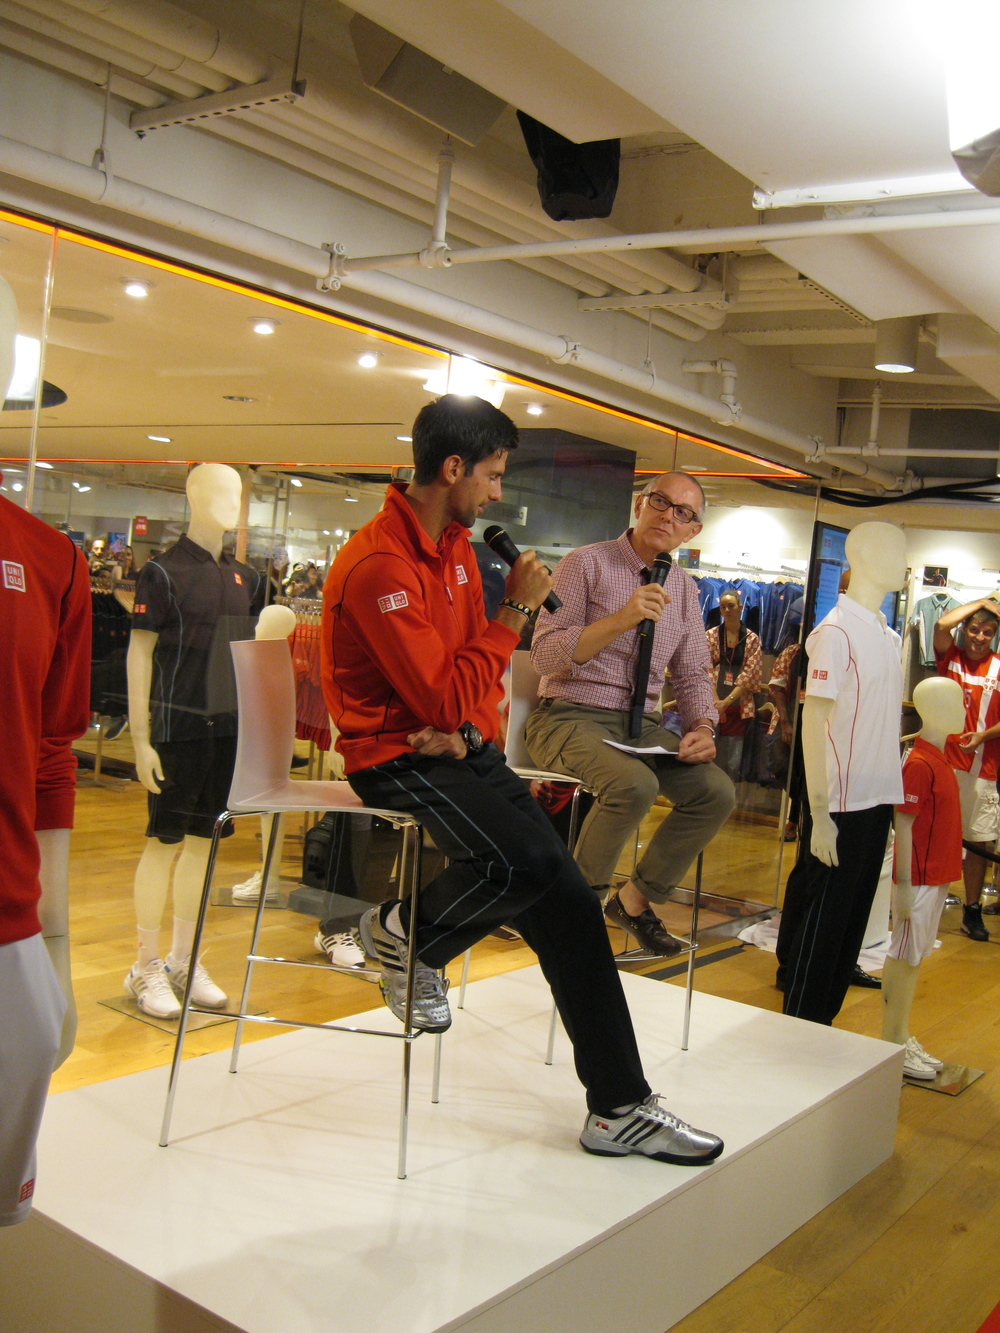 After NYE, Georgette spent another evening with Nole earlier this year at this UNIQLO opening.